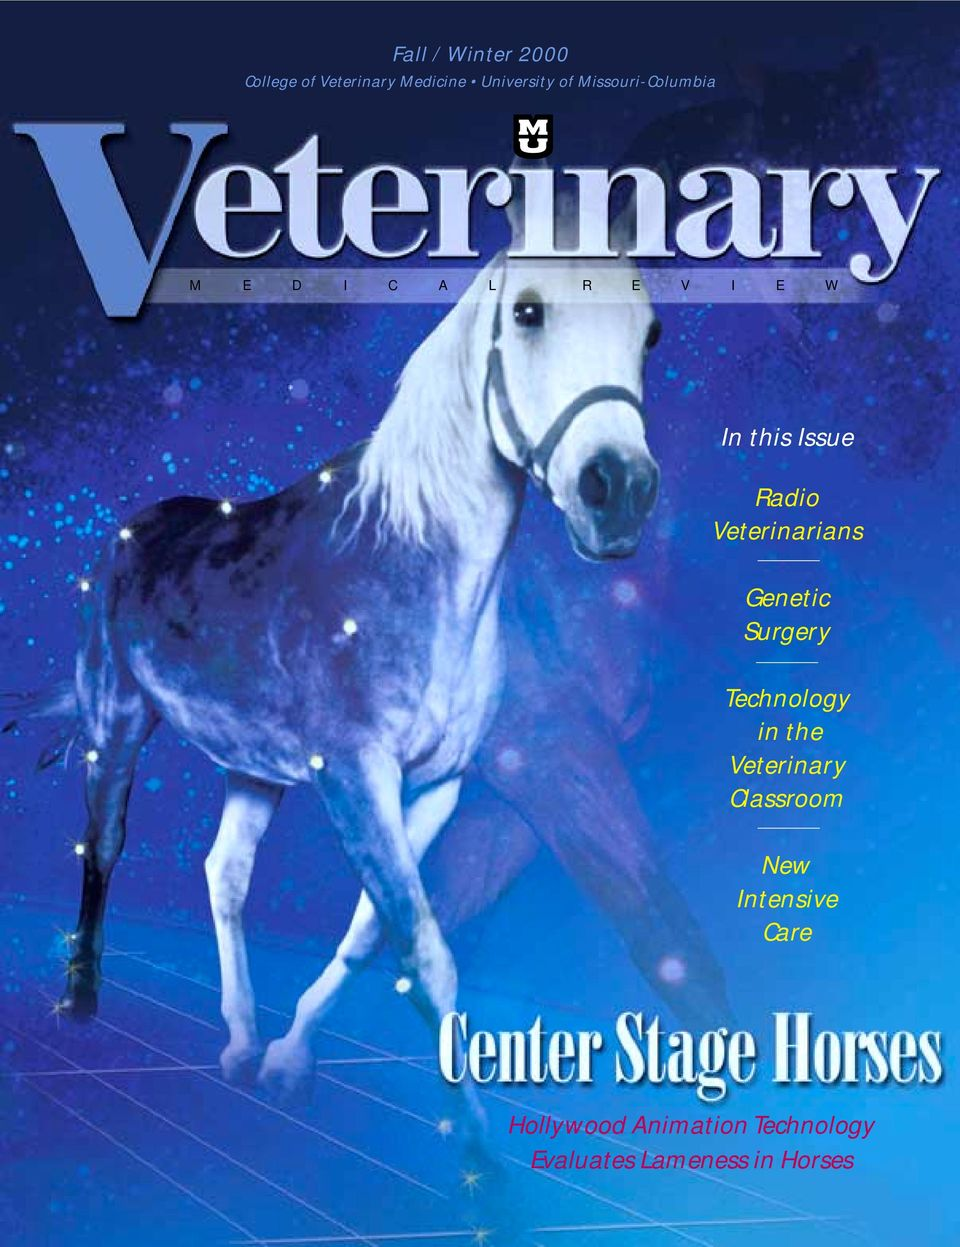 Veterinarians Genetic Surgery Technology in the Veterinary Classroom